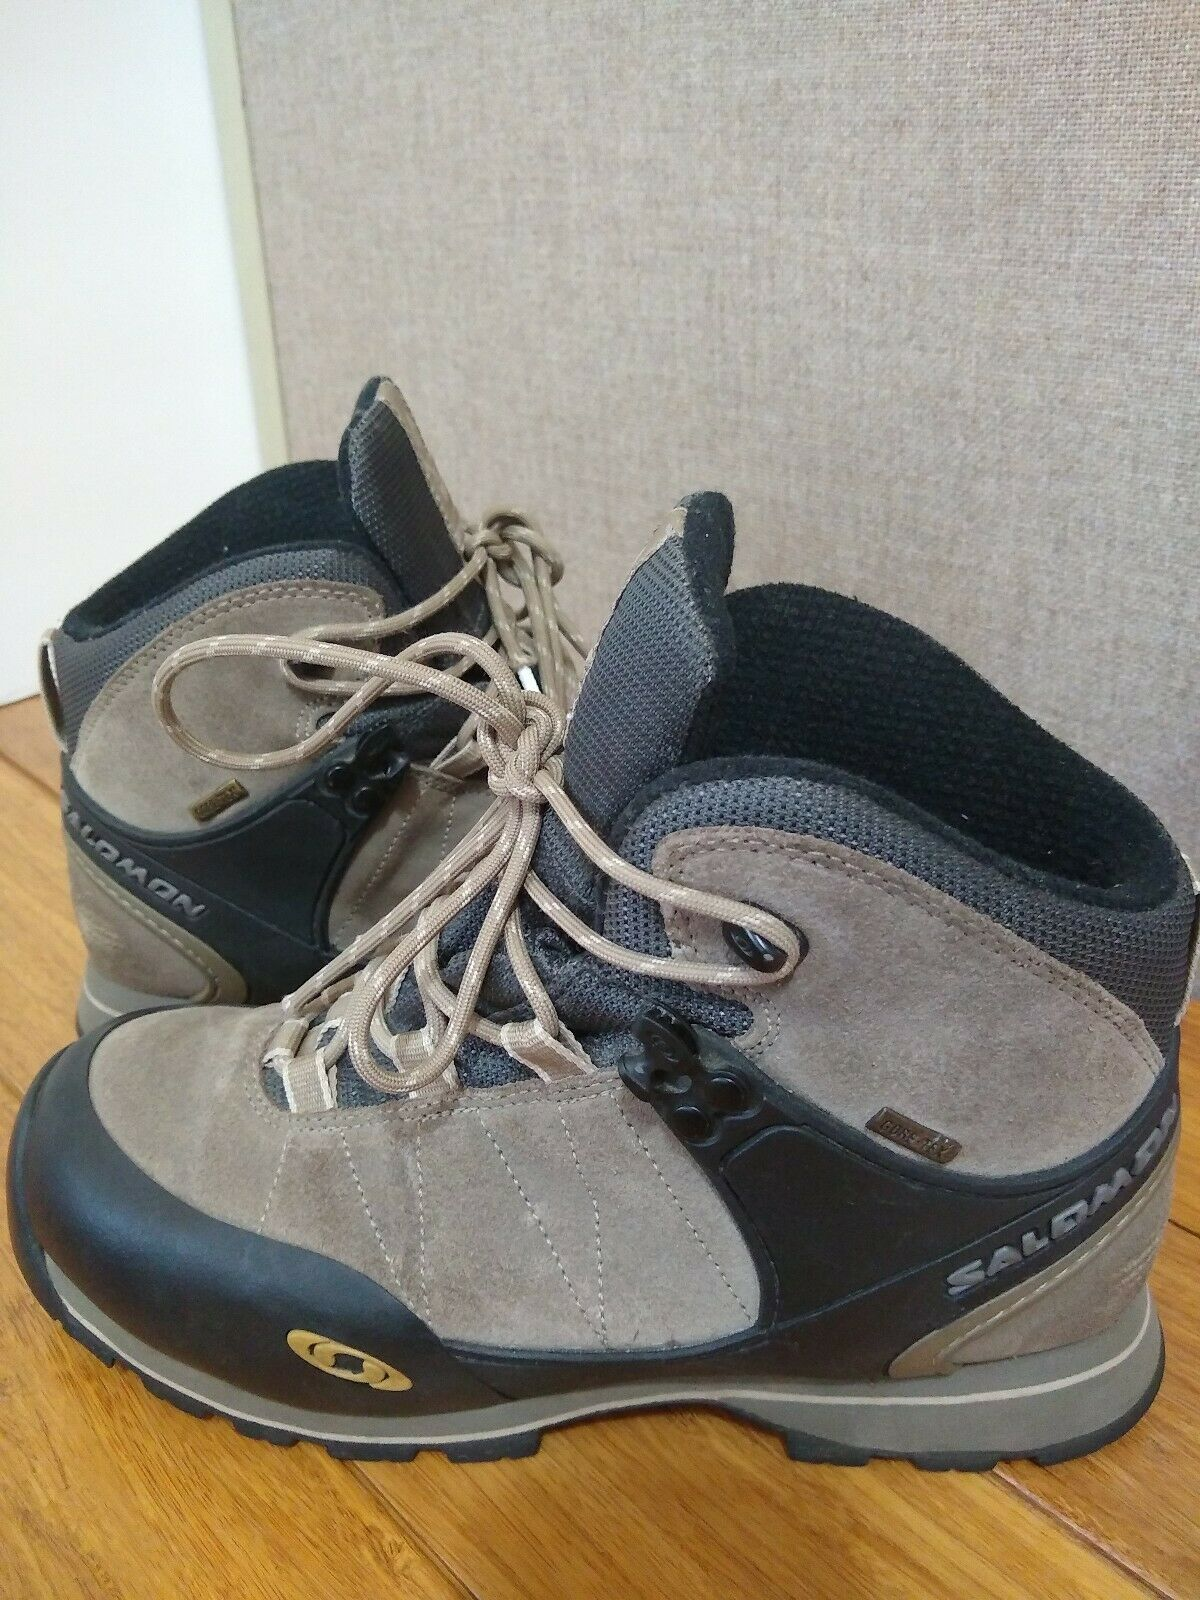 Salomon Contagrip Gore- Tex Women's Hiking Trail Boots Sz 8  G  pre-owned.  top brand